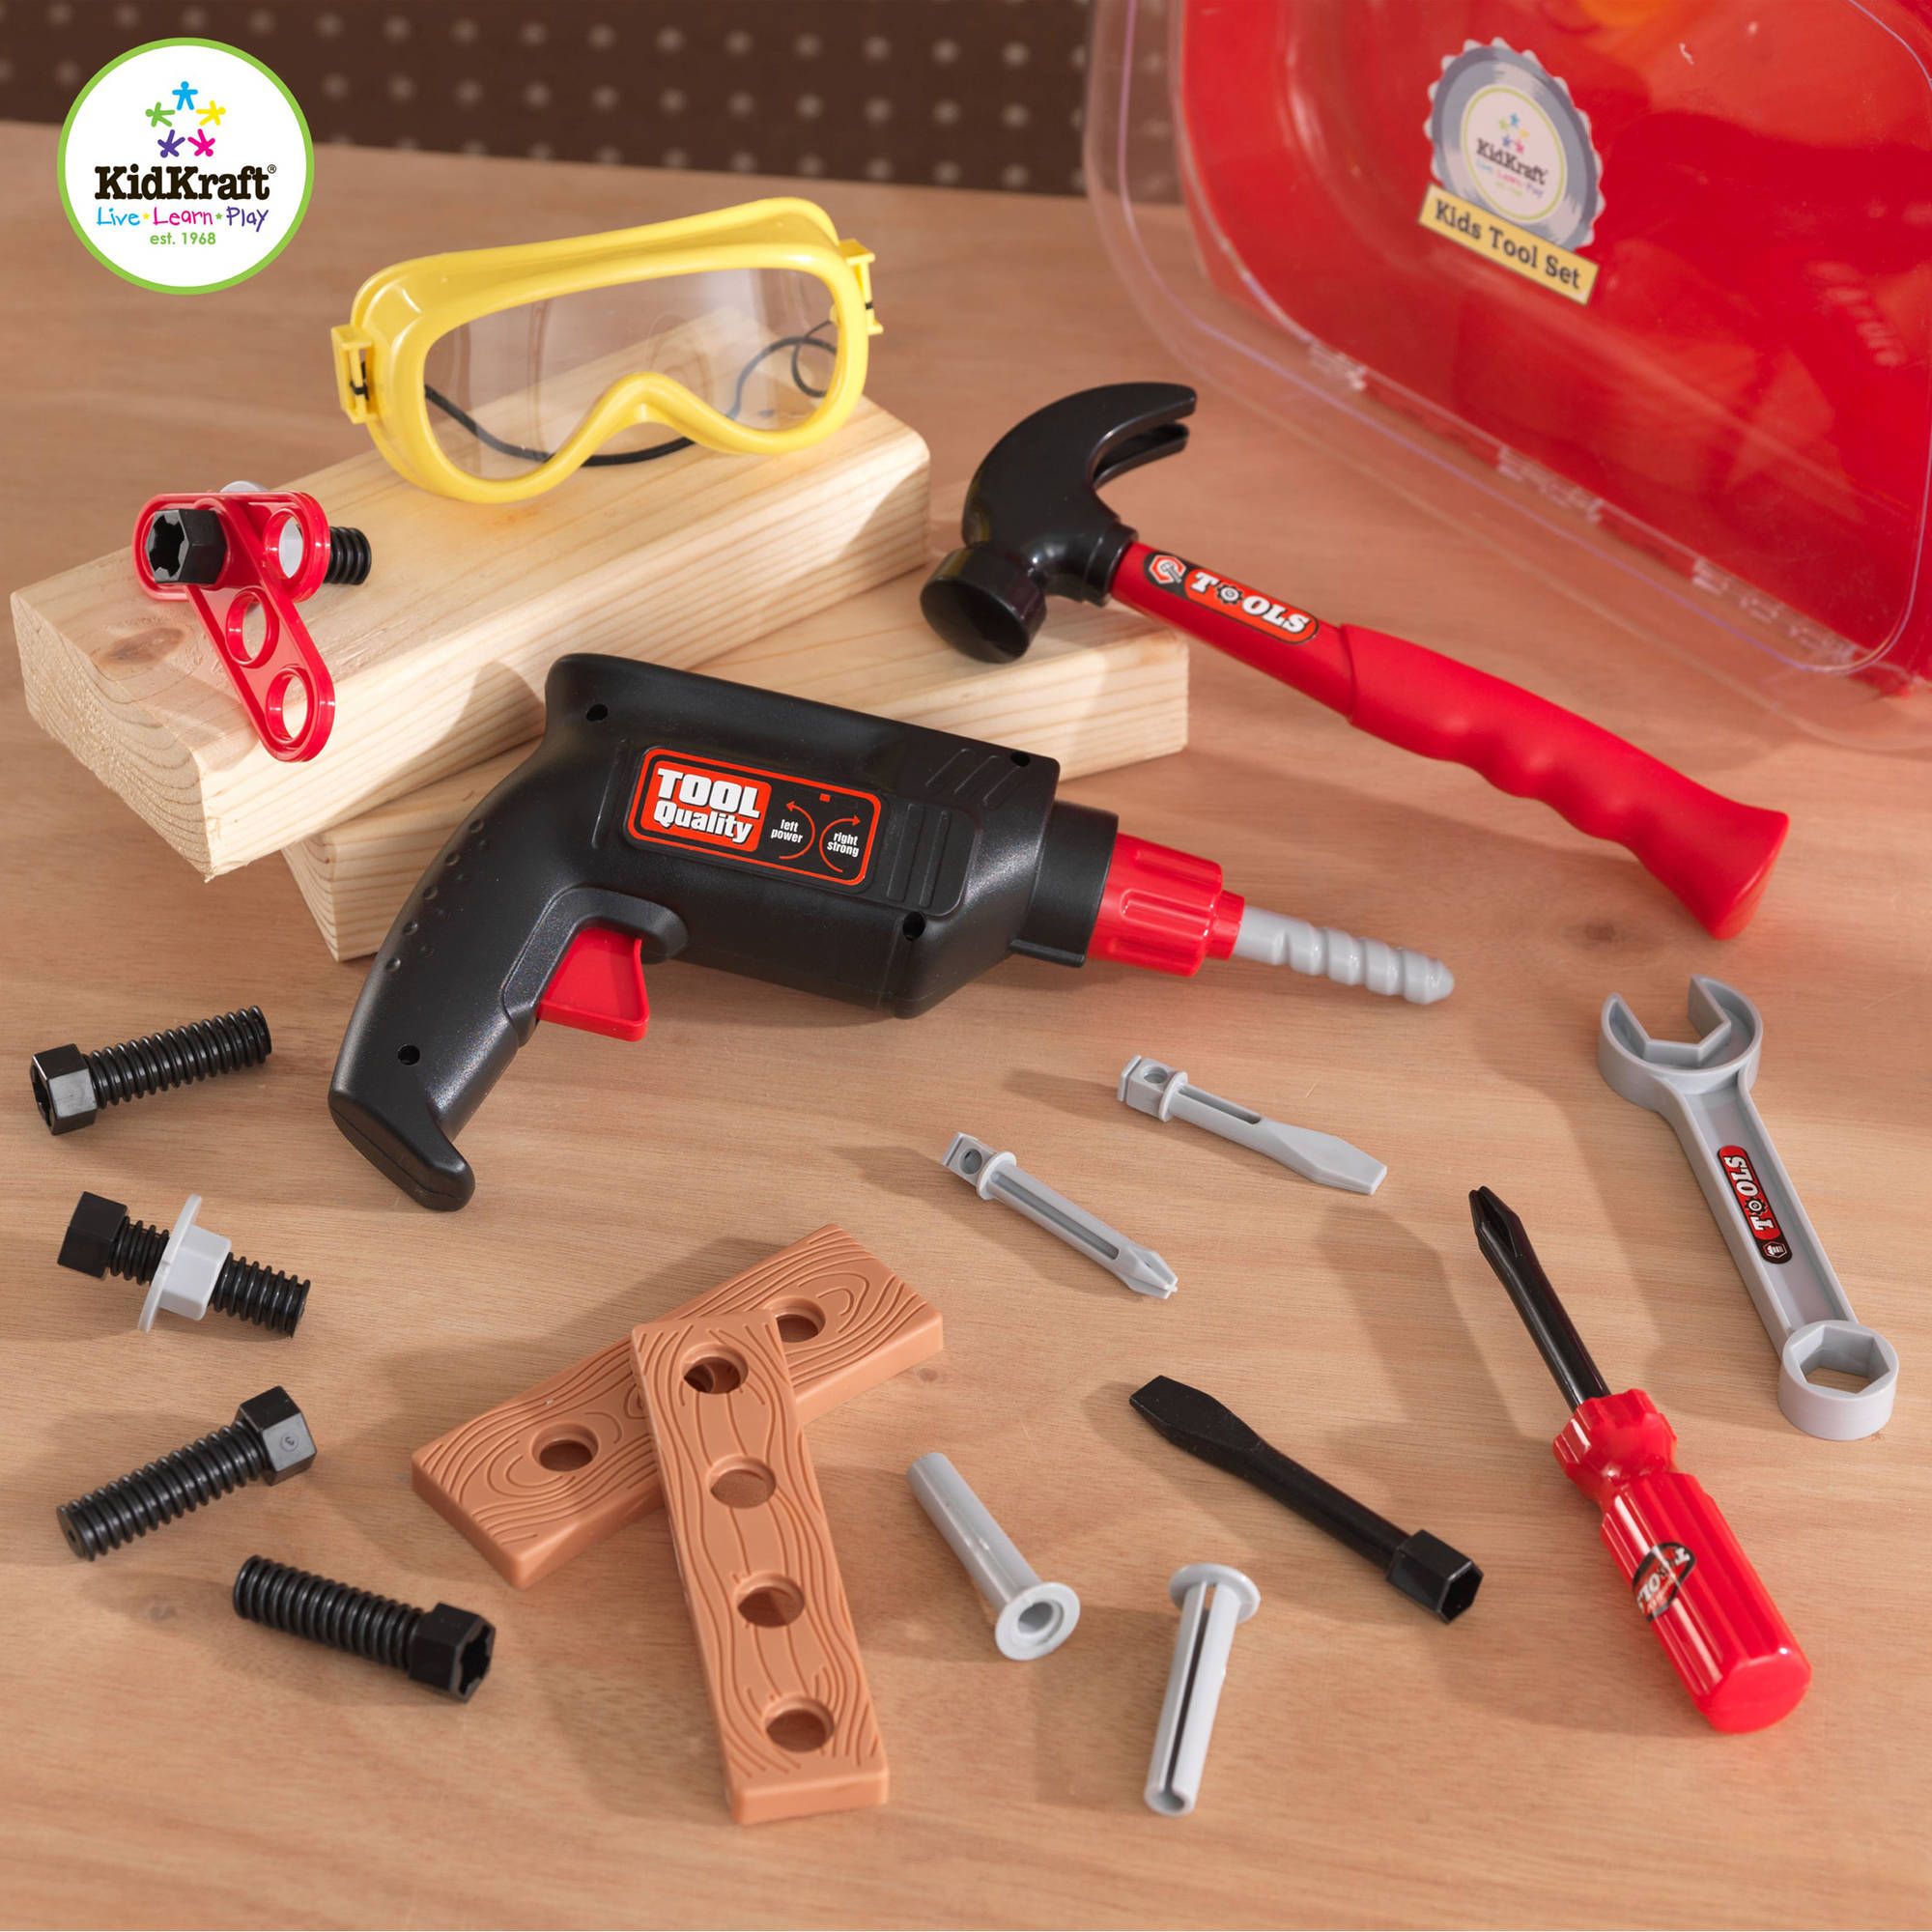 KidKraft Tool Kit Play Set